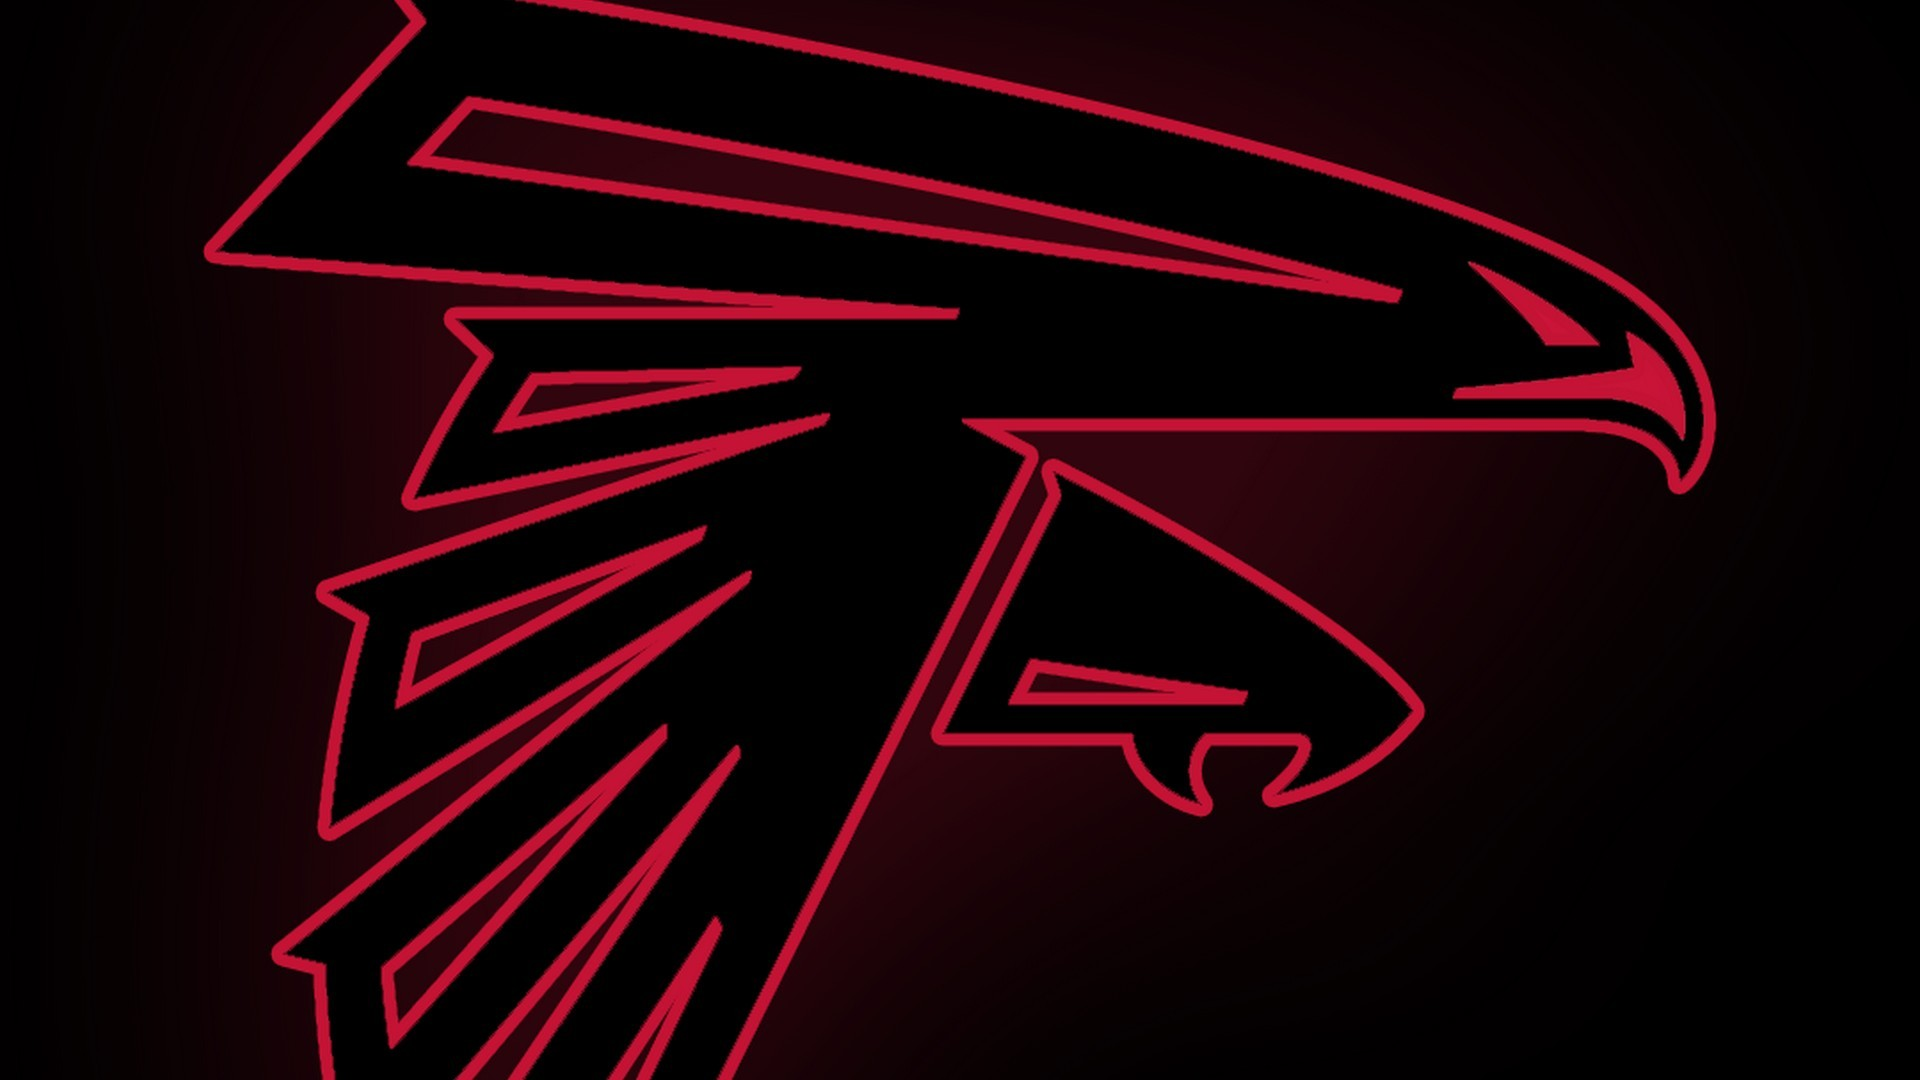 1920x1080 Atlanta Falcons Wallpaper For Mac Backgrounds